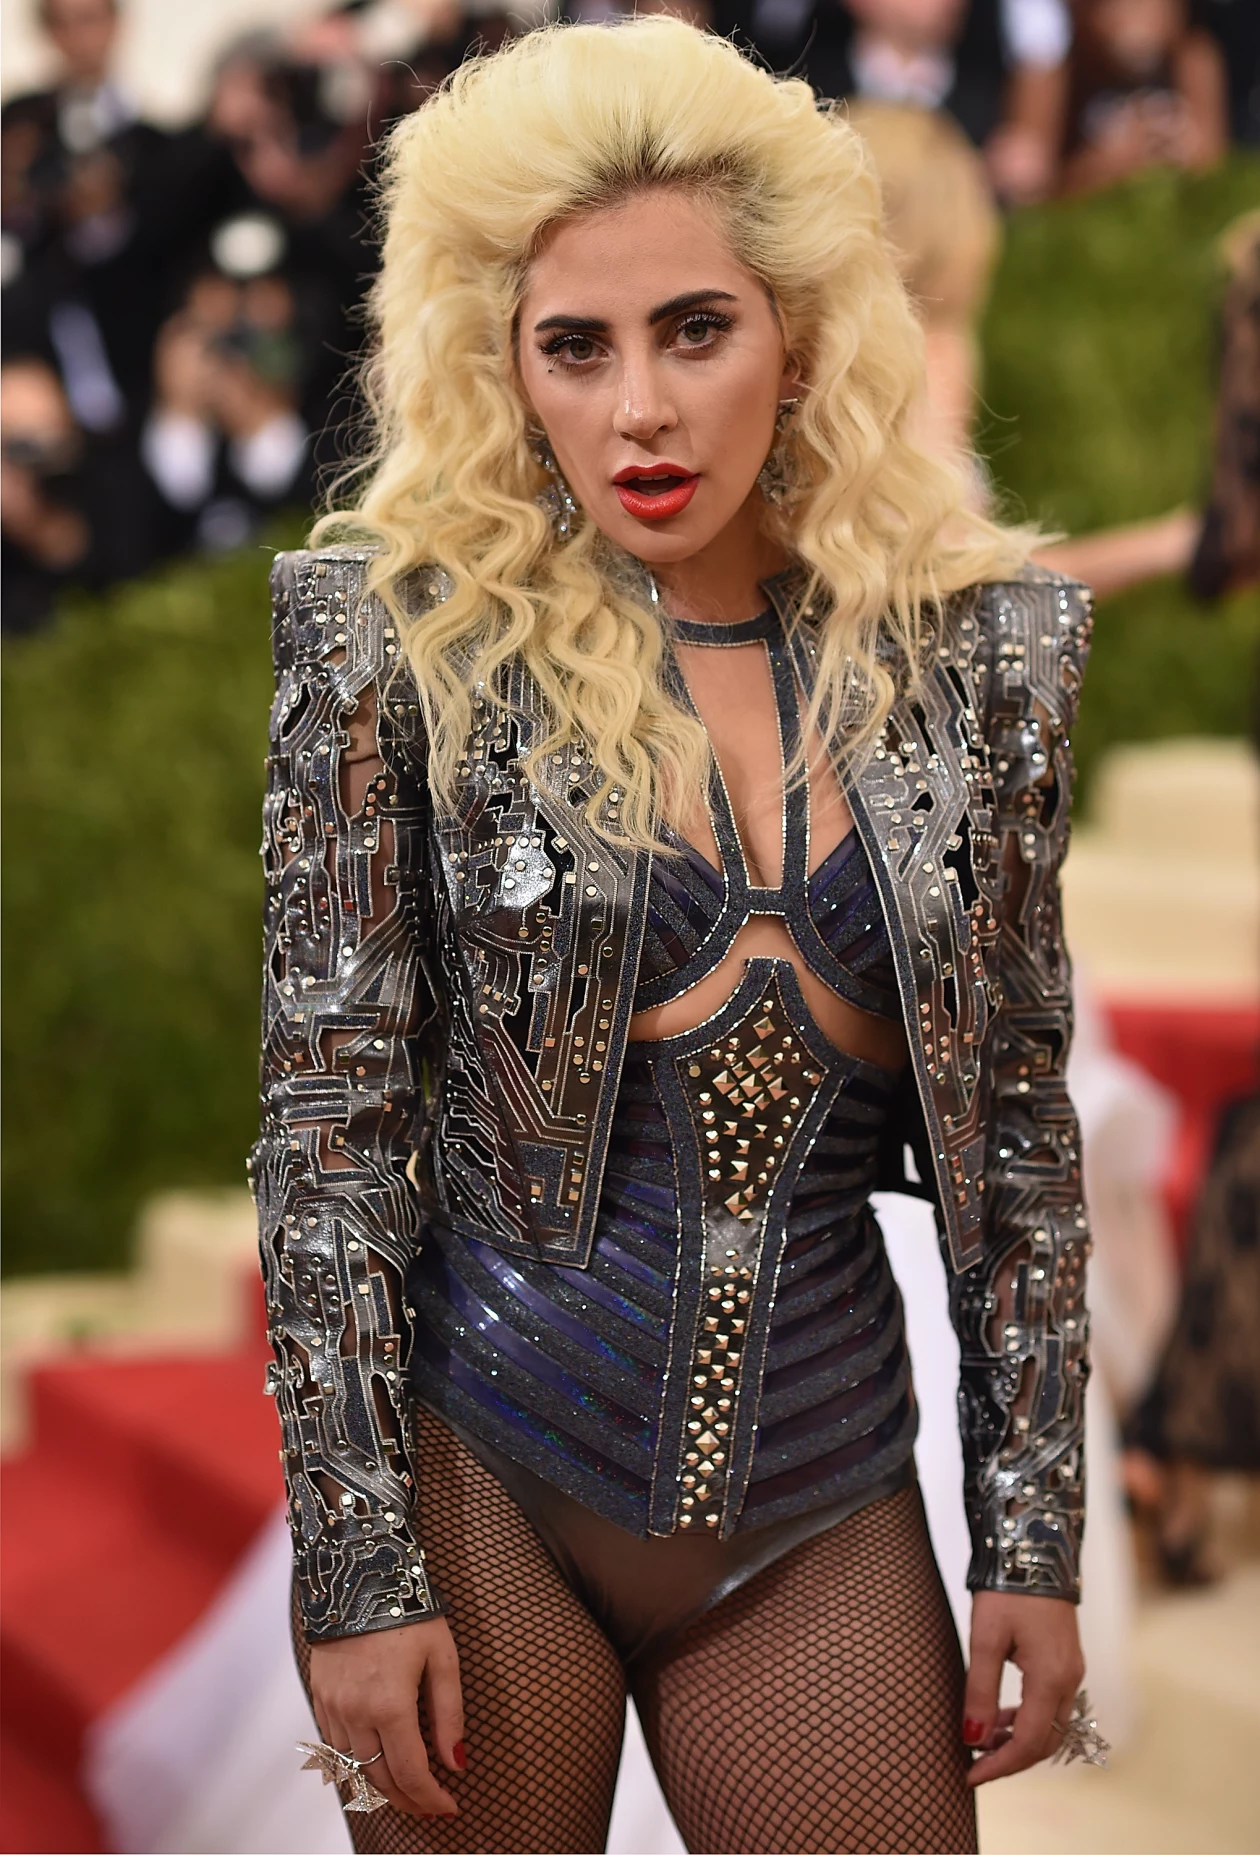 Celebrities Wearing Bling Lady Gaga Wears a Studded Bikini with A Long Sleeves Pull Over Studded Jacket